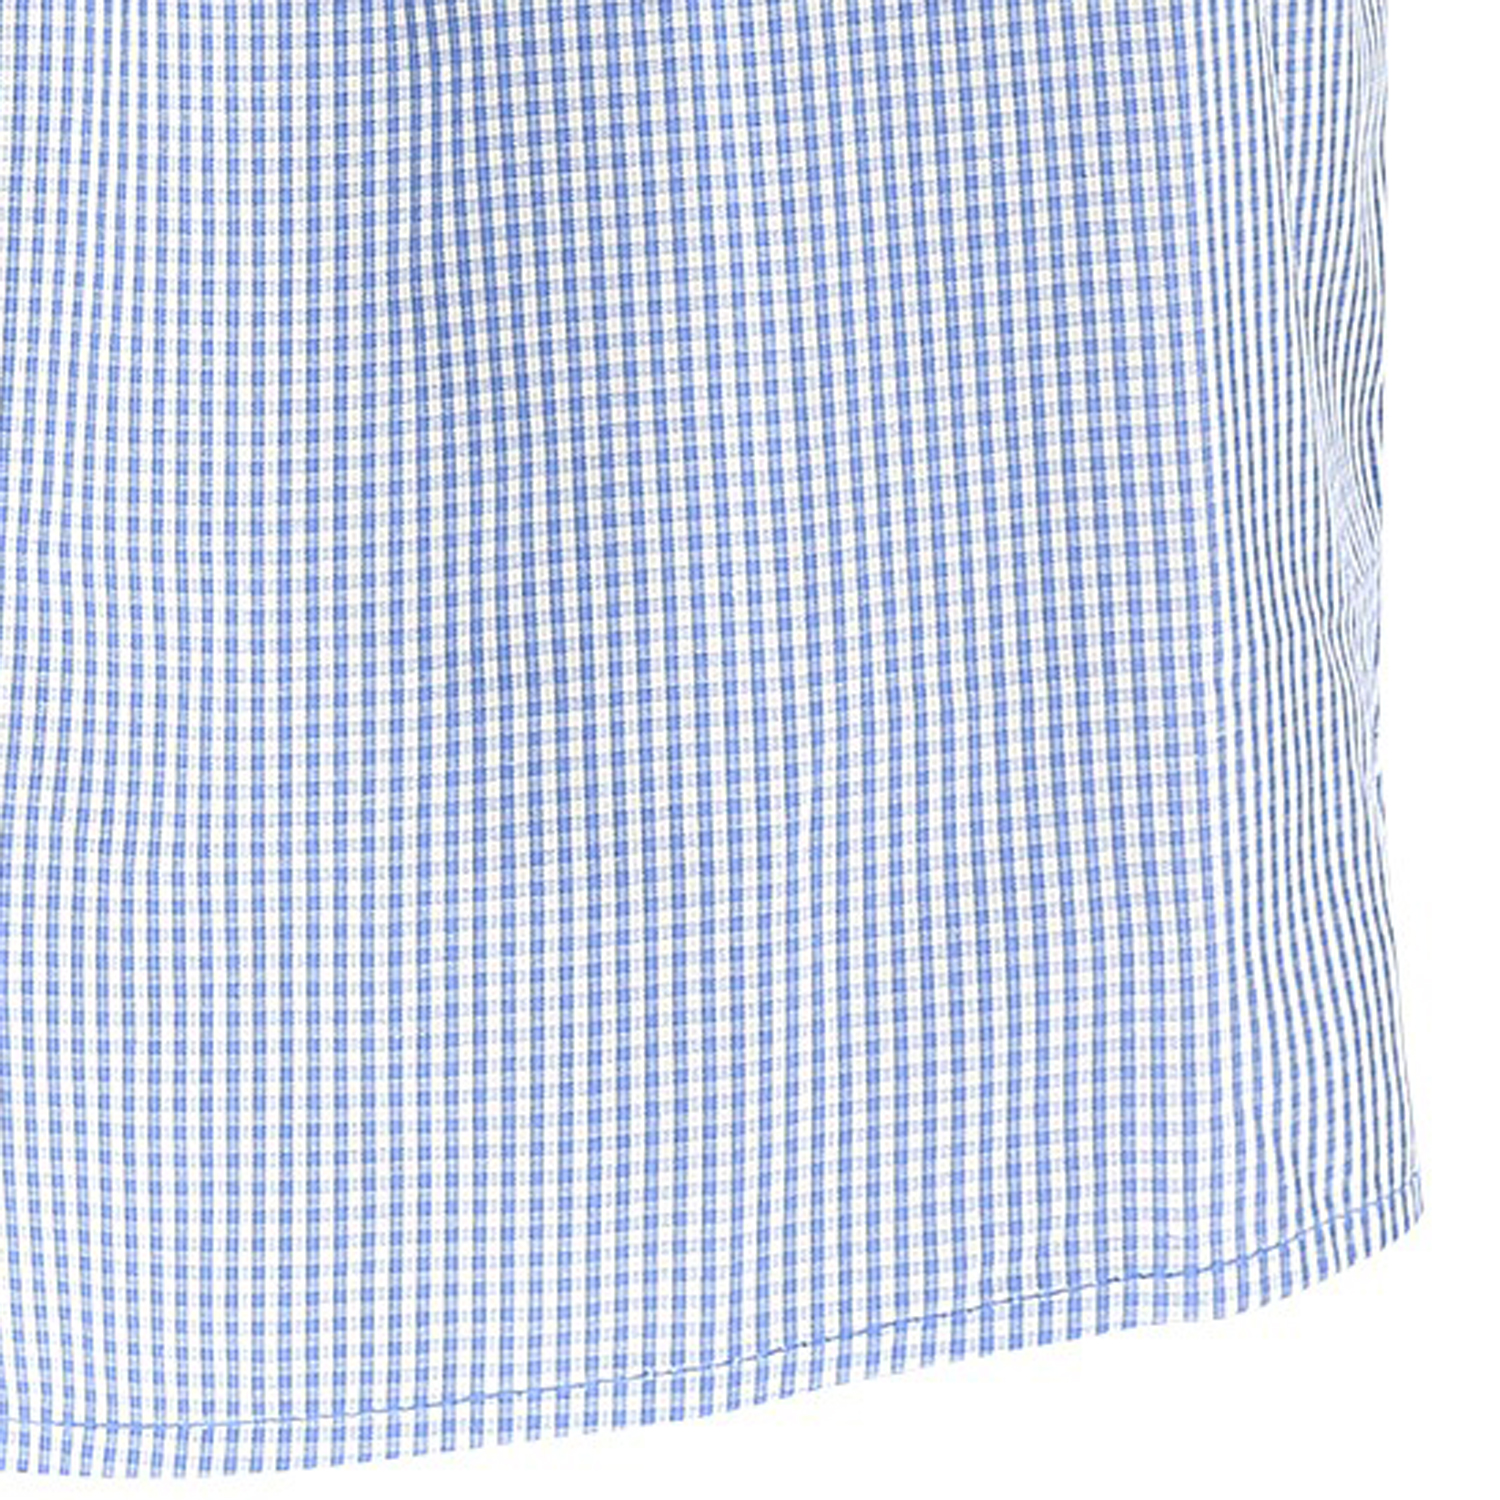 Detail Image to Boxershorts light blue checked for men by Jockey in oversizes up to 6XL